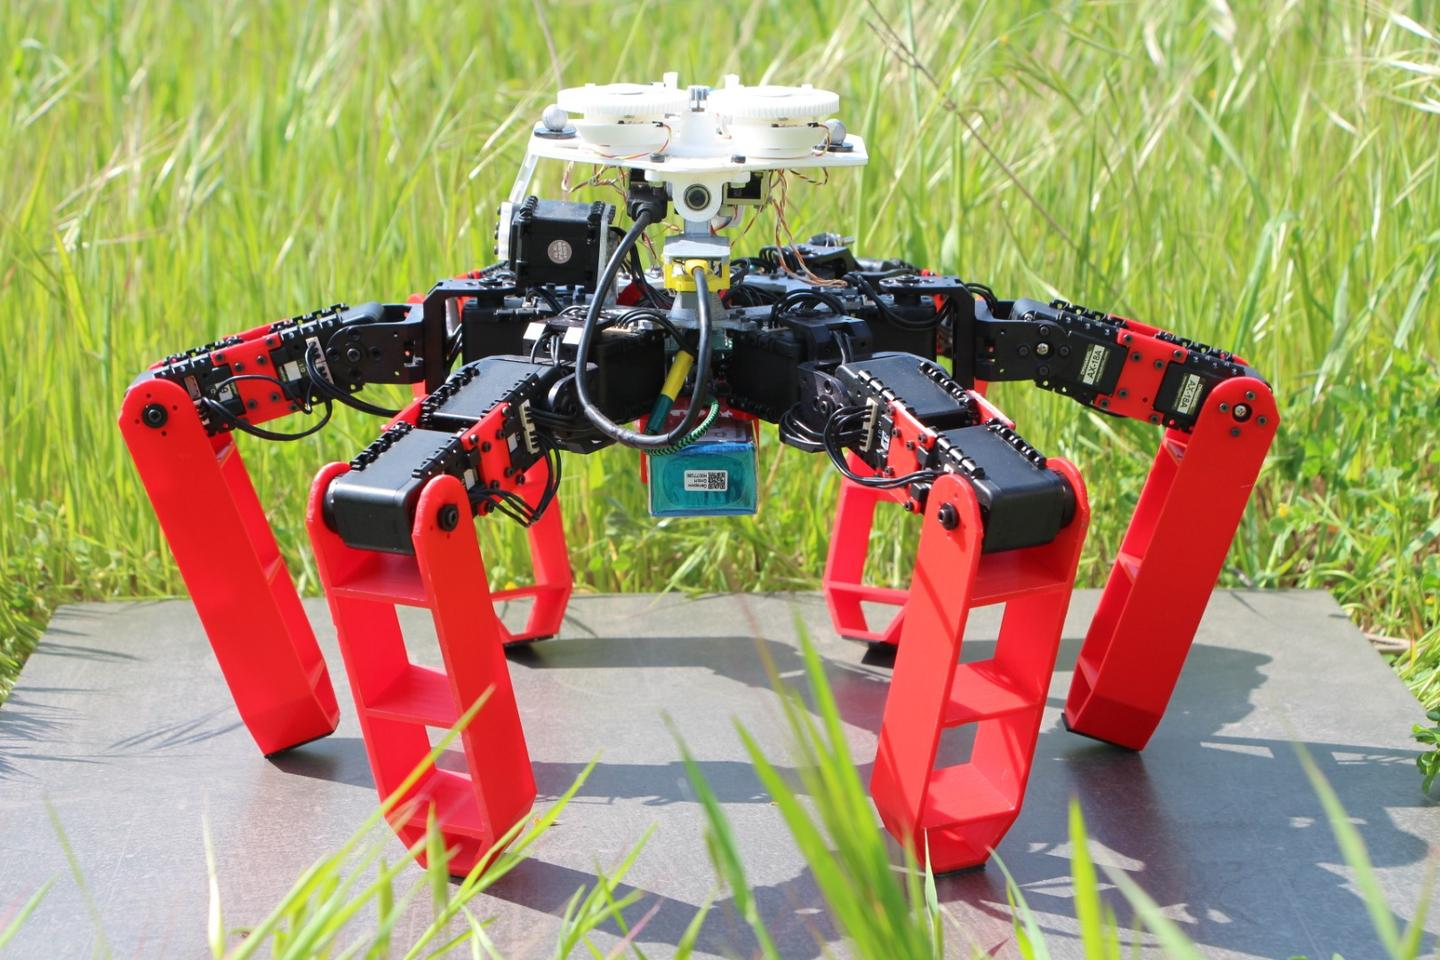 AntBot can determine its heading with an accuracy of 0.4 degrees